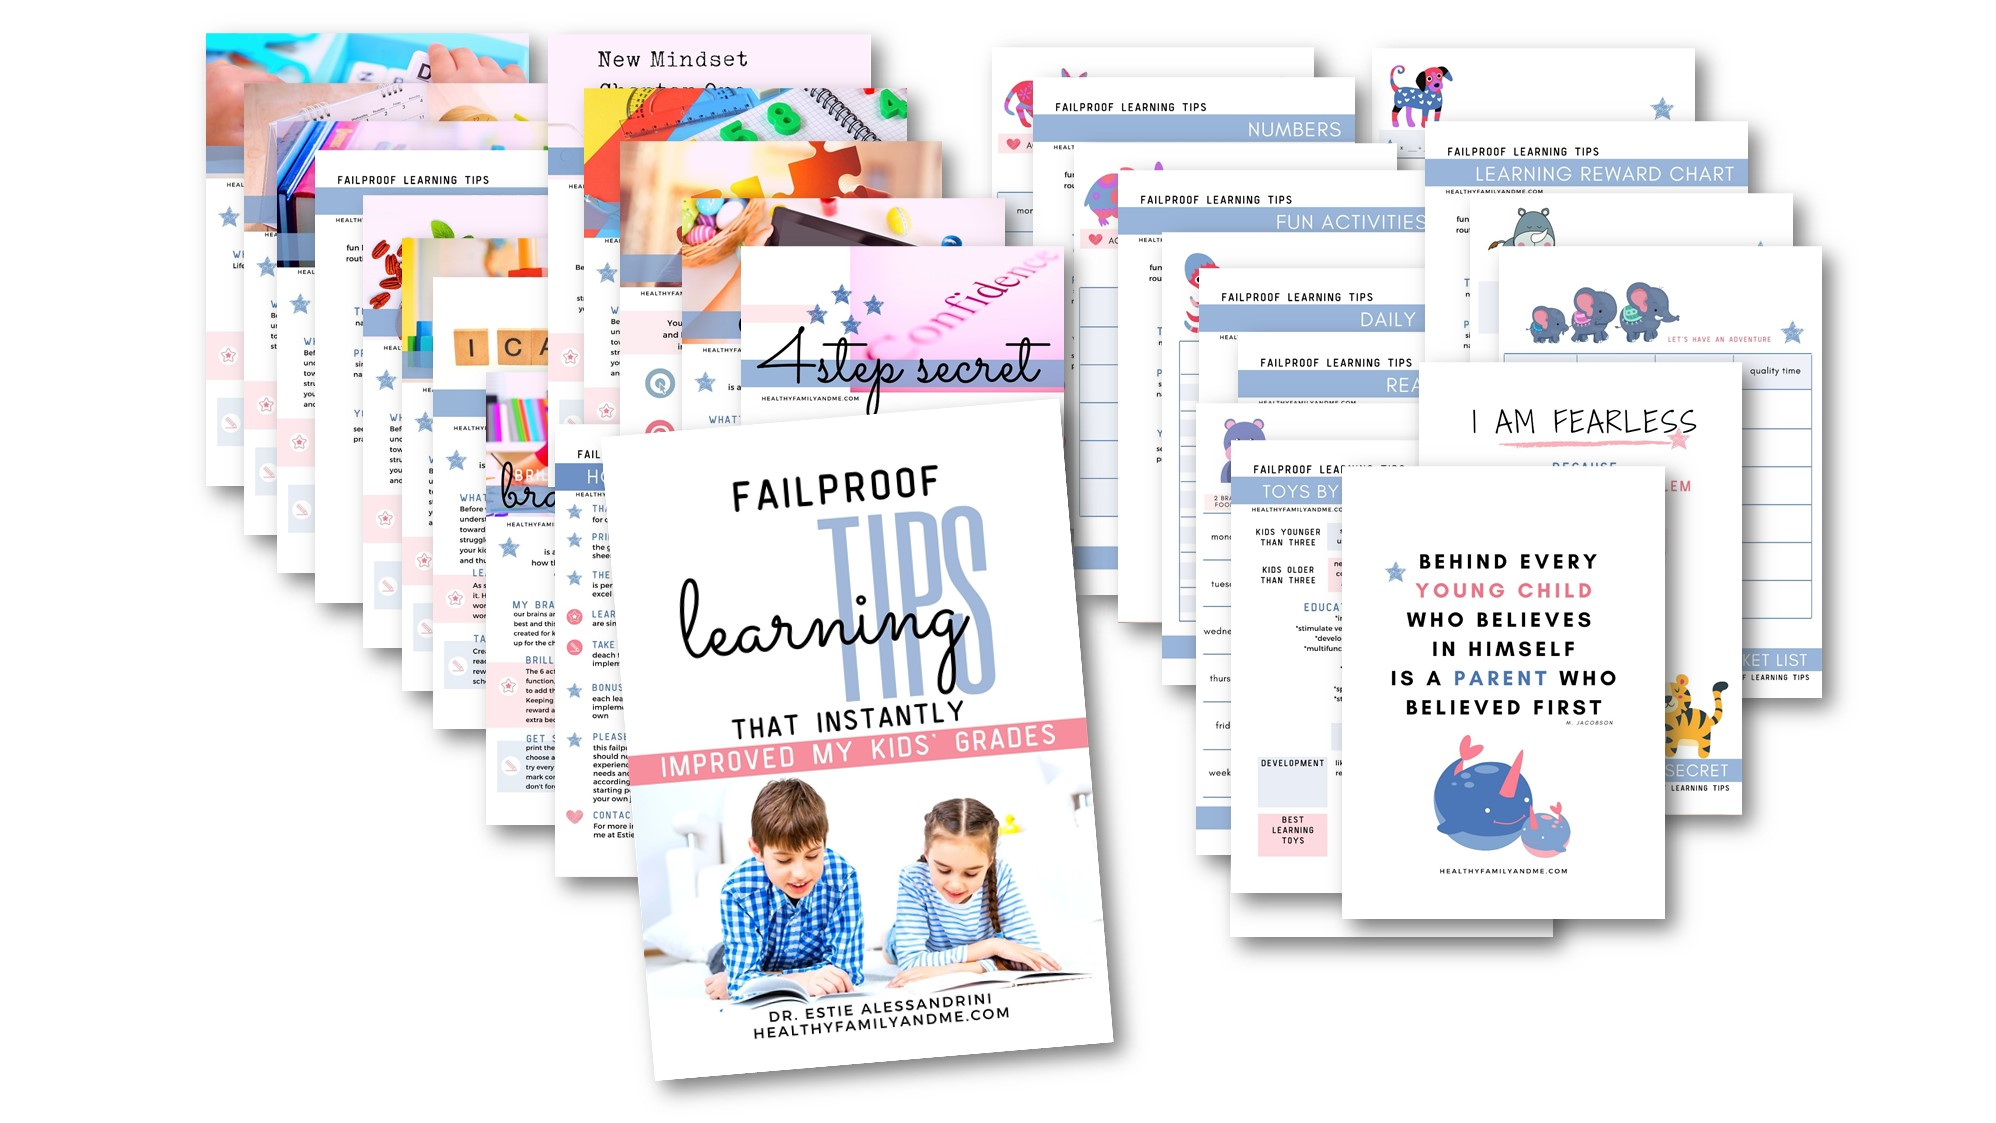 failproof learning tips ebook